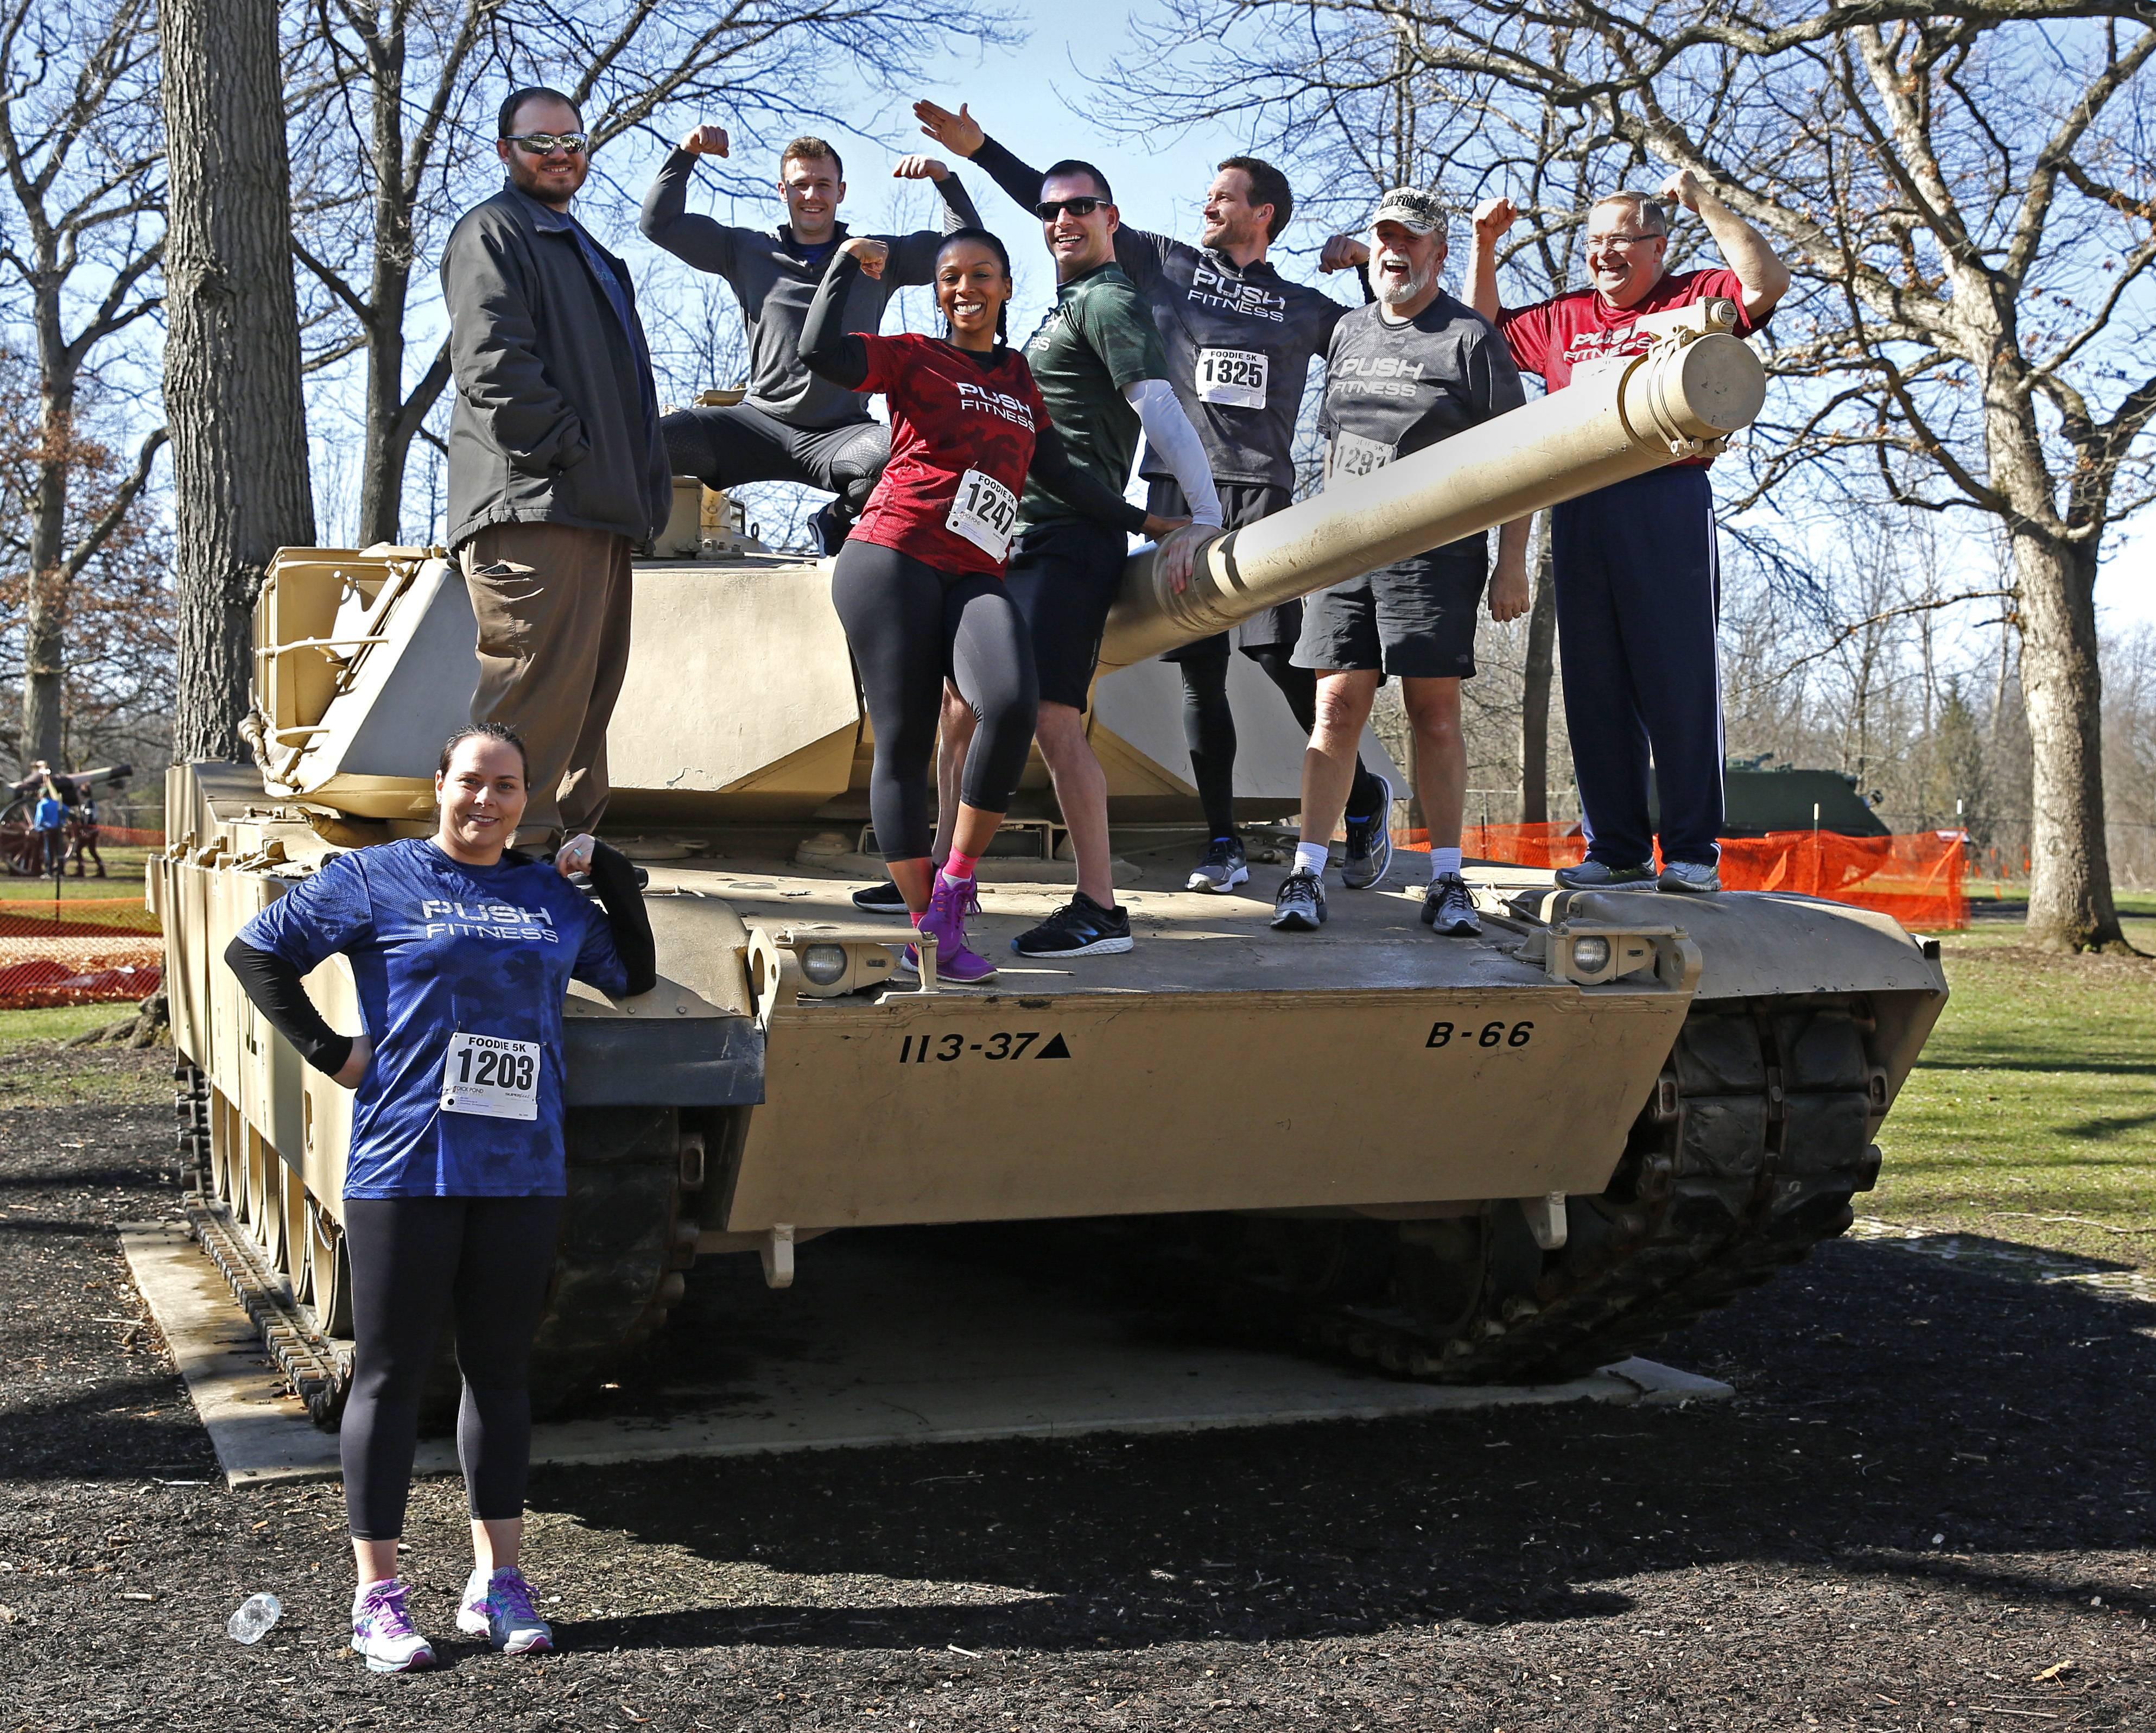 Push Fitness runners and their trainers participated in the Foodie 5K at Cantigny Park to help raise money for the Northern Illinois Food Bank.